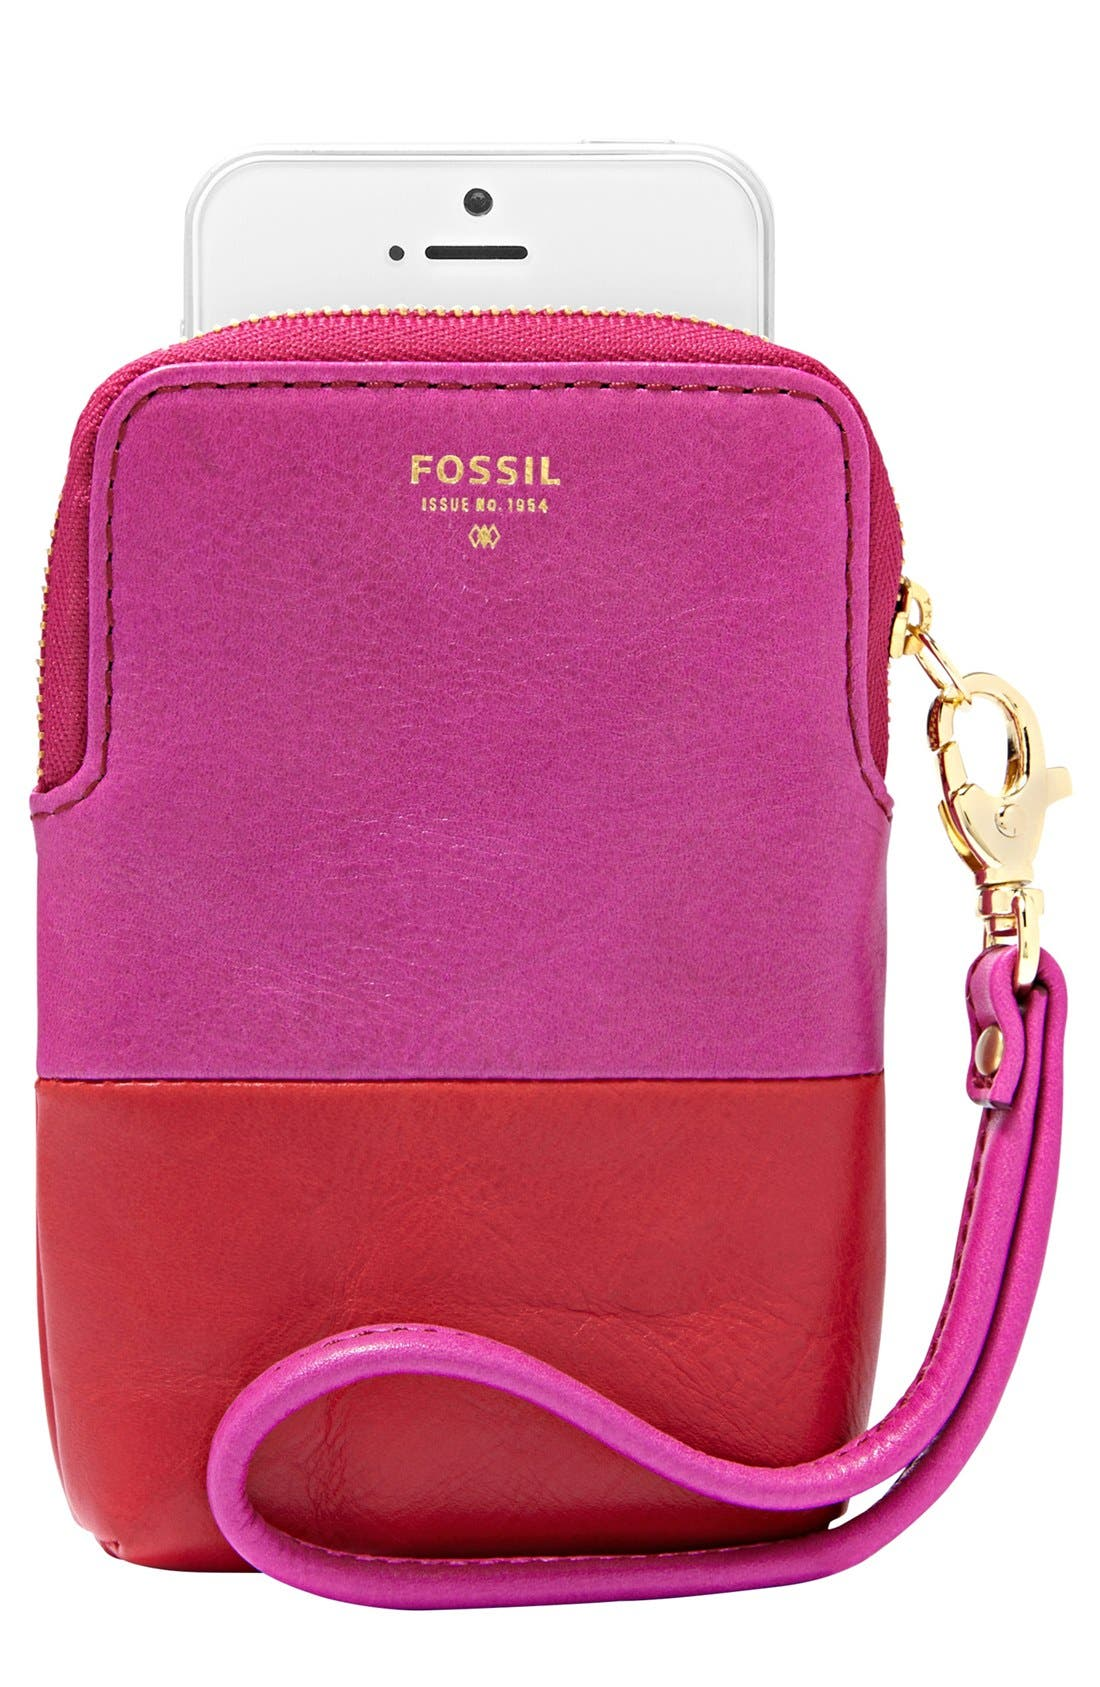 Main Image - Fossil Leather Phone Wristlet